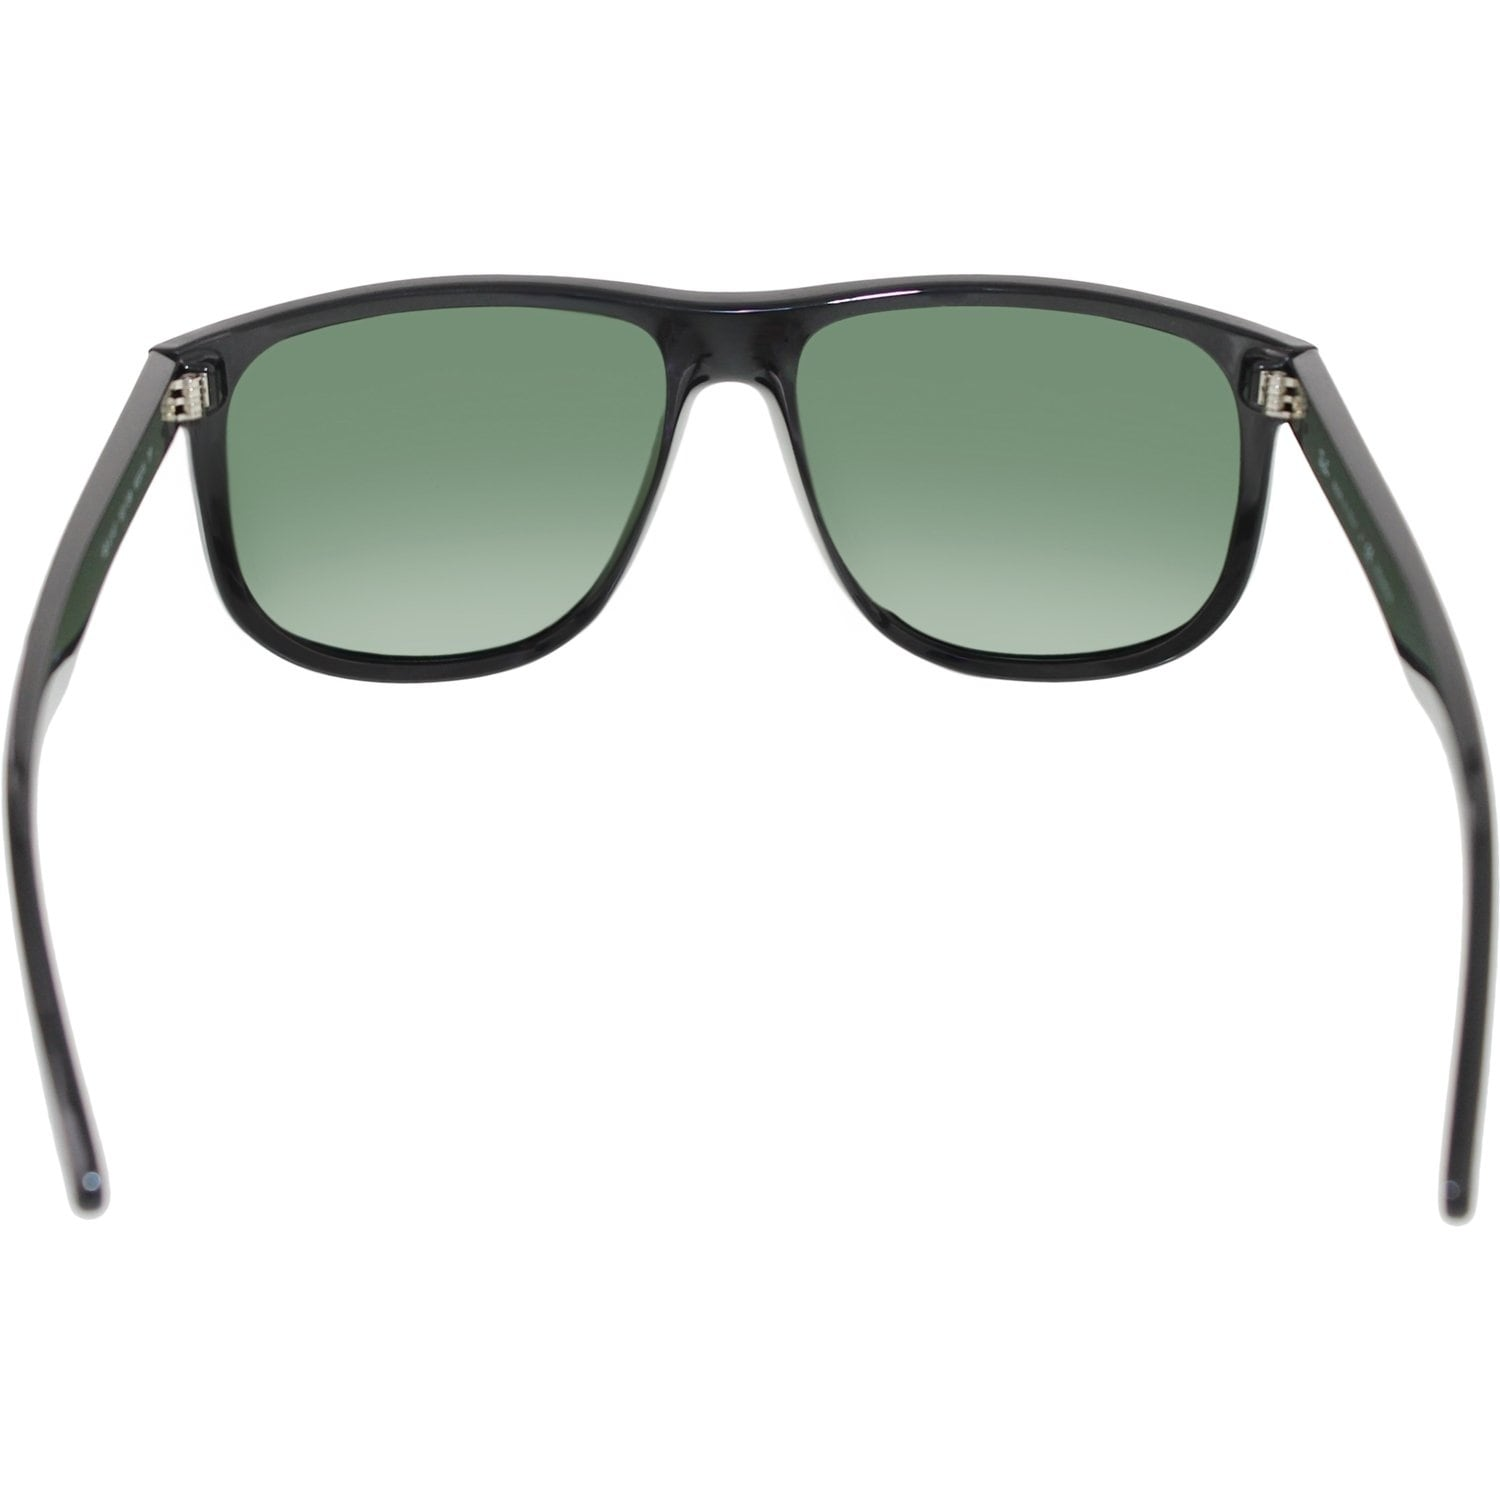 b772e4da924 Shop Ray-Ban Men s RB4147 Black Frame Polarized Green 60mm Lens Sunglasses  - Free Shipping Today - Overstock - 17754487